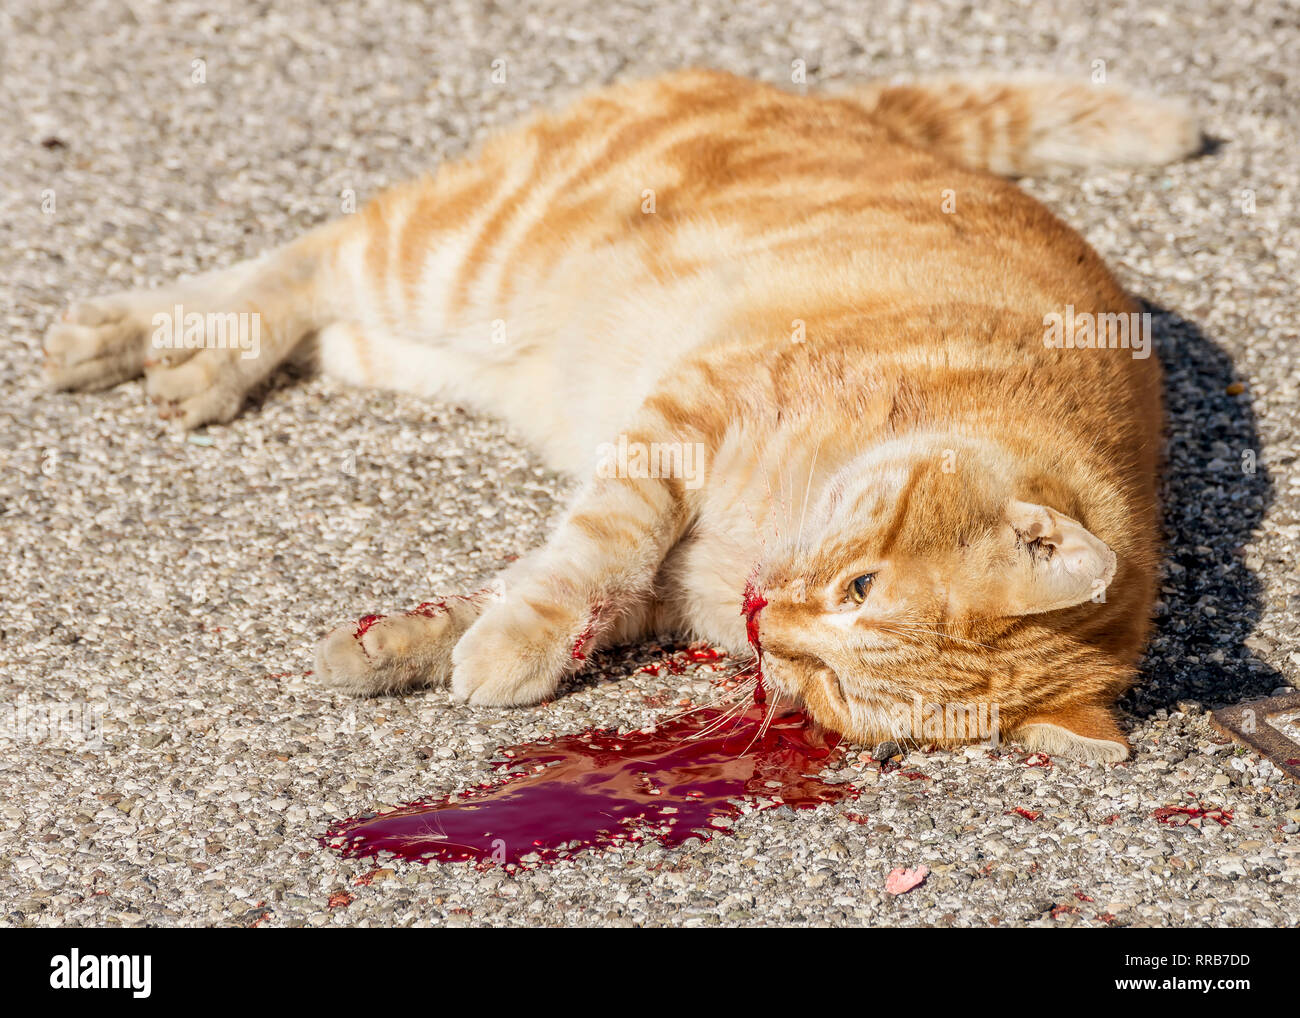 Beautiful red cat killed by man's cruelty after losing a lot of blood - Stock Image